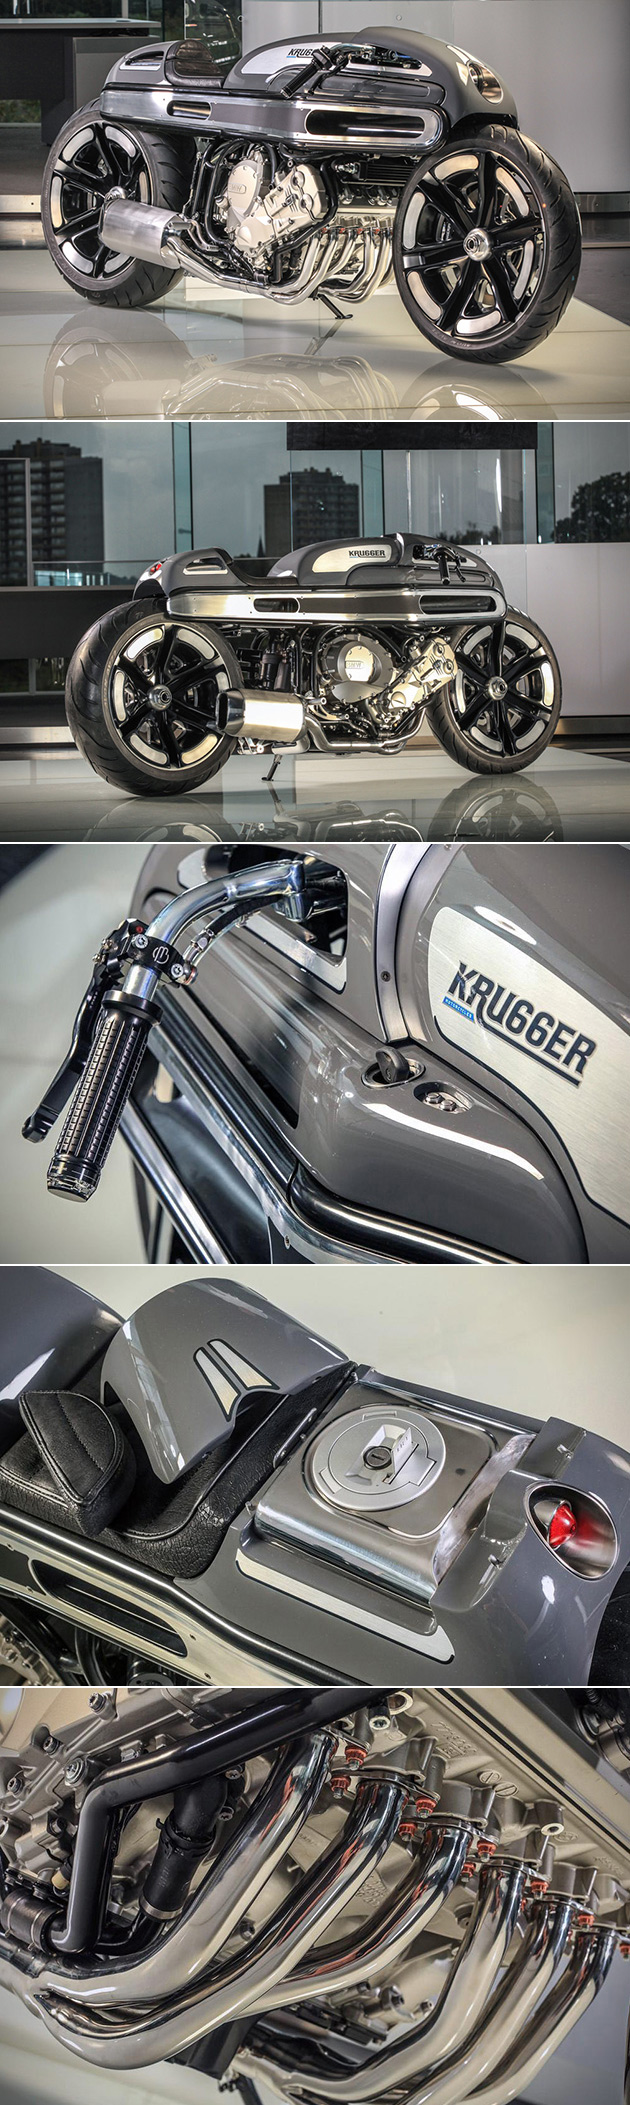 K1600 Krugger BMW Motorcycle